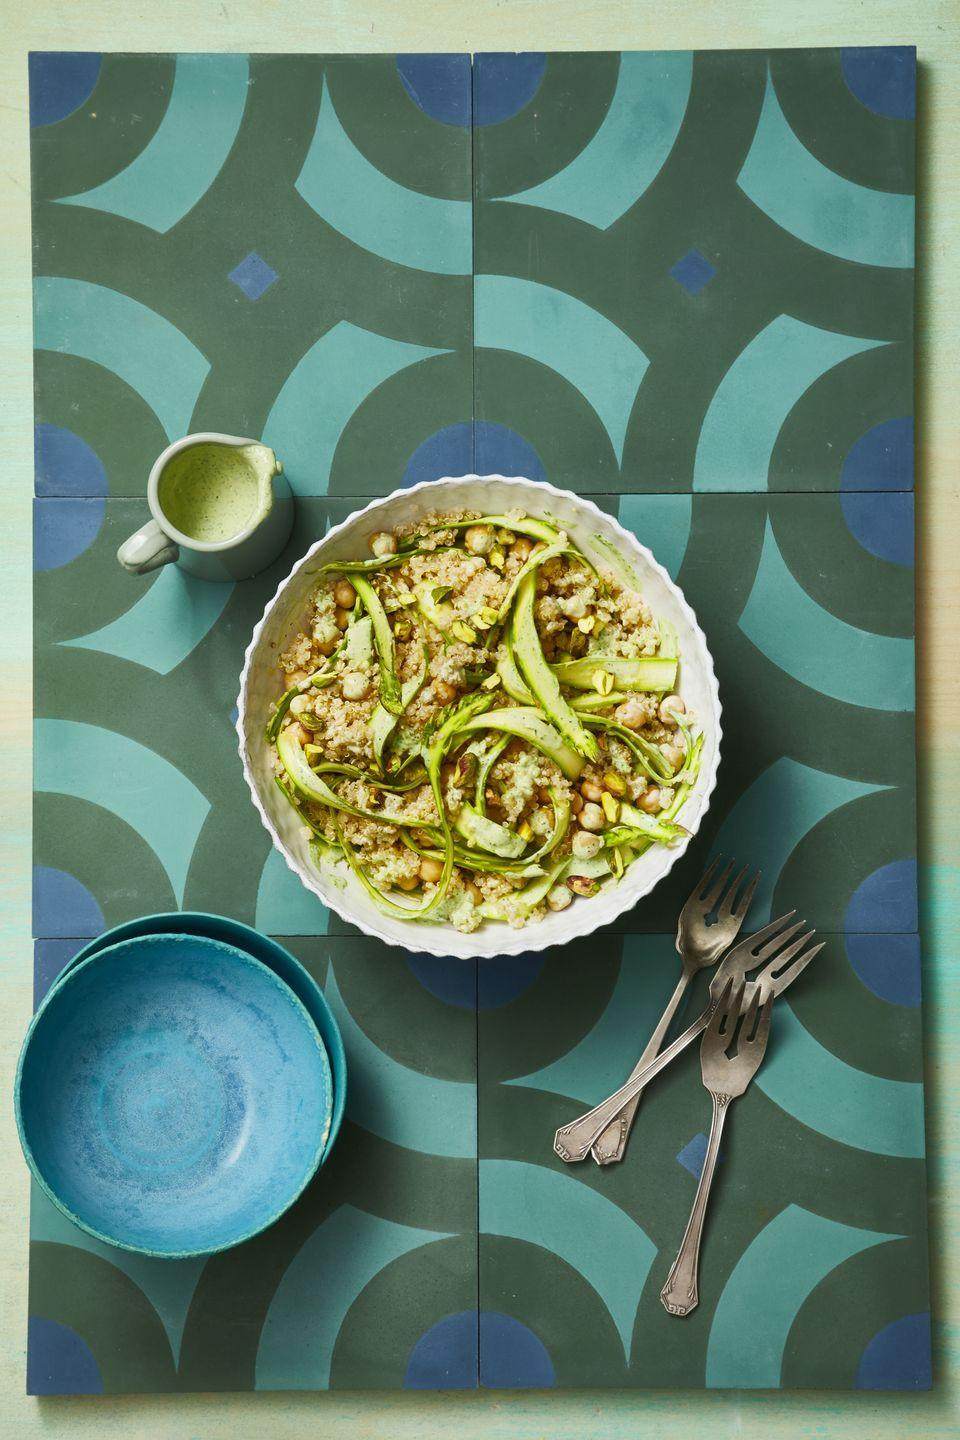 "<p>Shaved asparagus ribbons make this simple quinoa and chickpea salad more special. Plus, the hearty vegetable can stand up to creamy tahini dressing.</p><p><em><a href=""https://www.goodhousekeeping.com/food-recipes/healthy/a19866004/tahini-lemon-quinoa-with-asparagus-ribbons-recipe/"" rel=""nofollow noopener"" target=""_blank"" data-ylk=""slk:Get the recipe for Tahini-Lemon Quinoa with Asparagus Ribbons »"" class=""link rapid-noclick-resp"">Get the recipe for Tahini-Lemon Quinoa with Asparagus Ribbons »</a></em></p>"